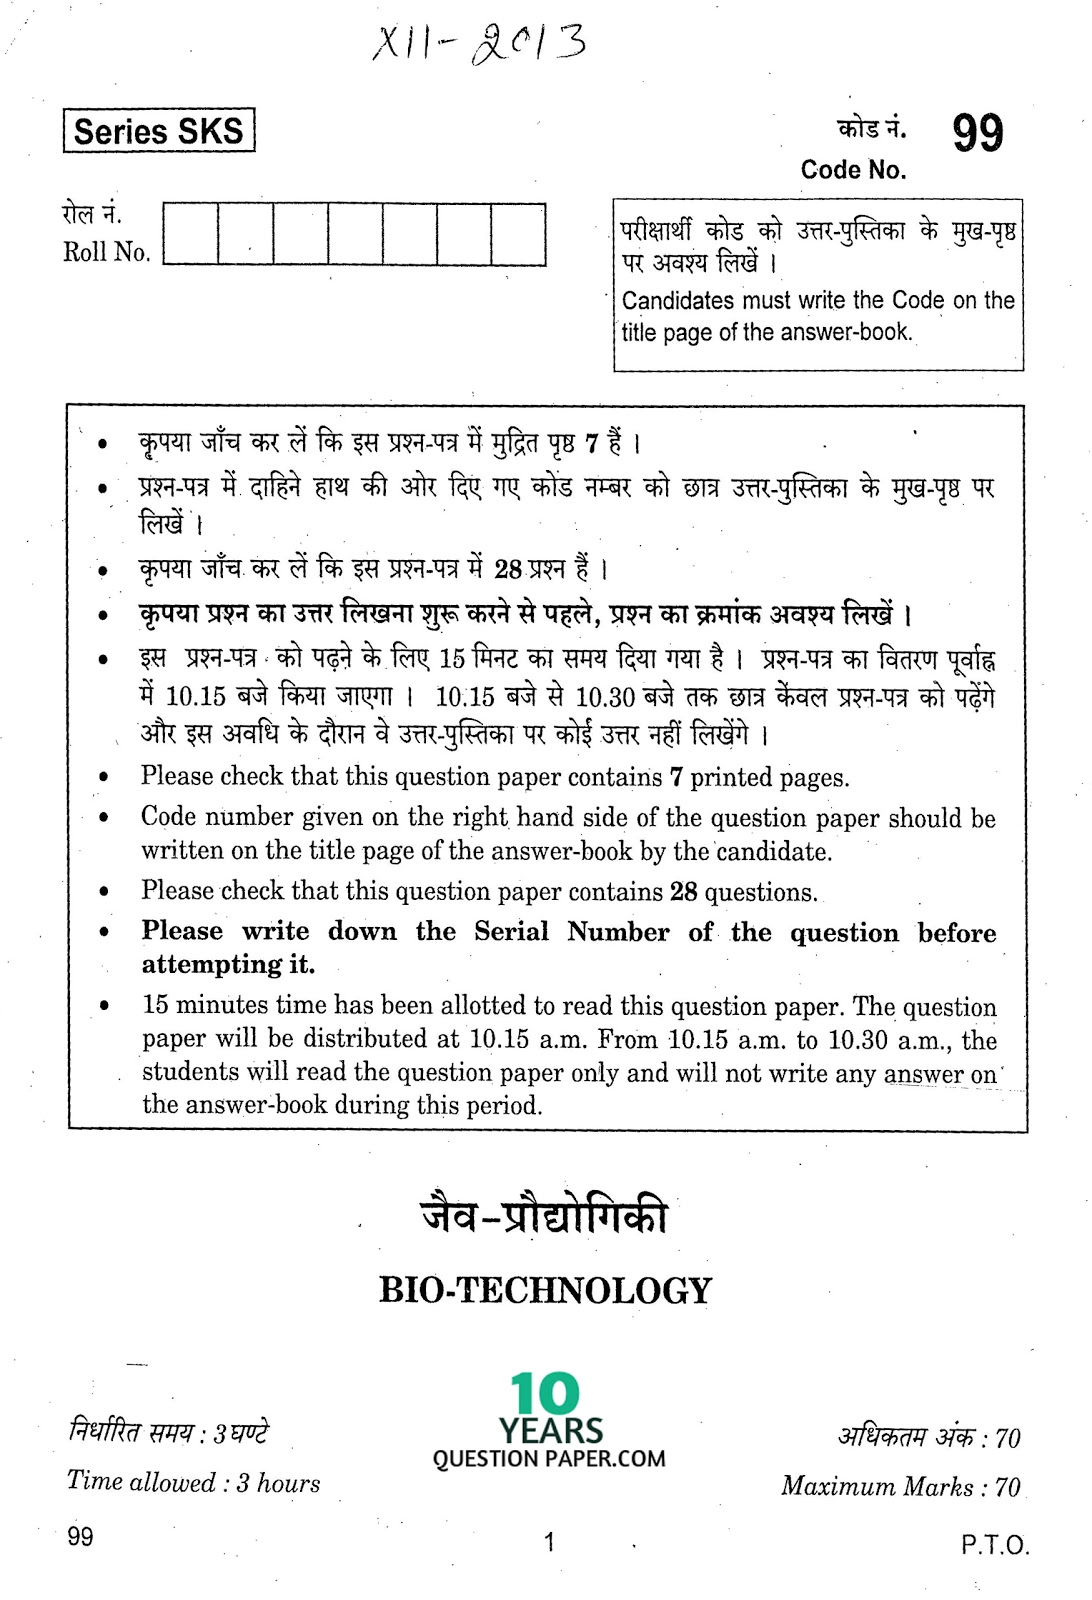 cbse class 12th 2013 Biotechnology question paper